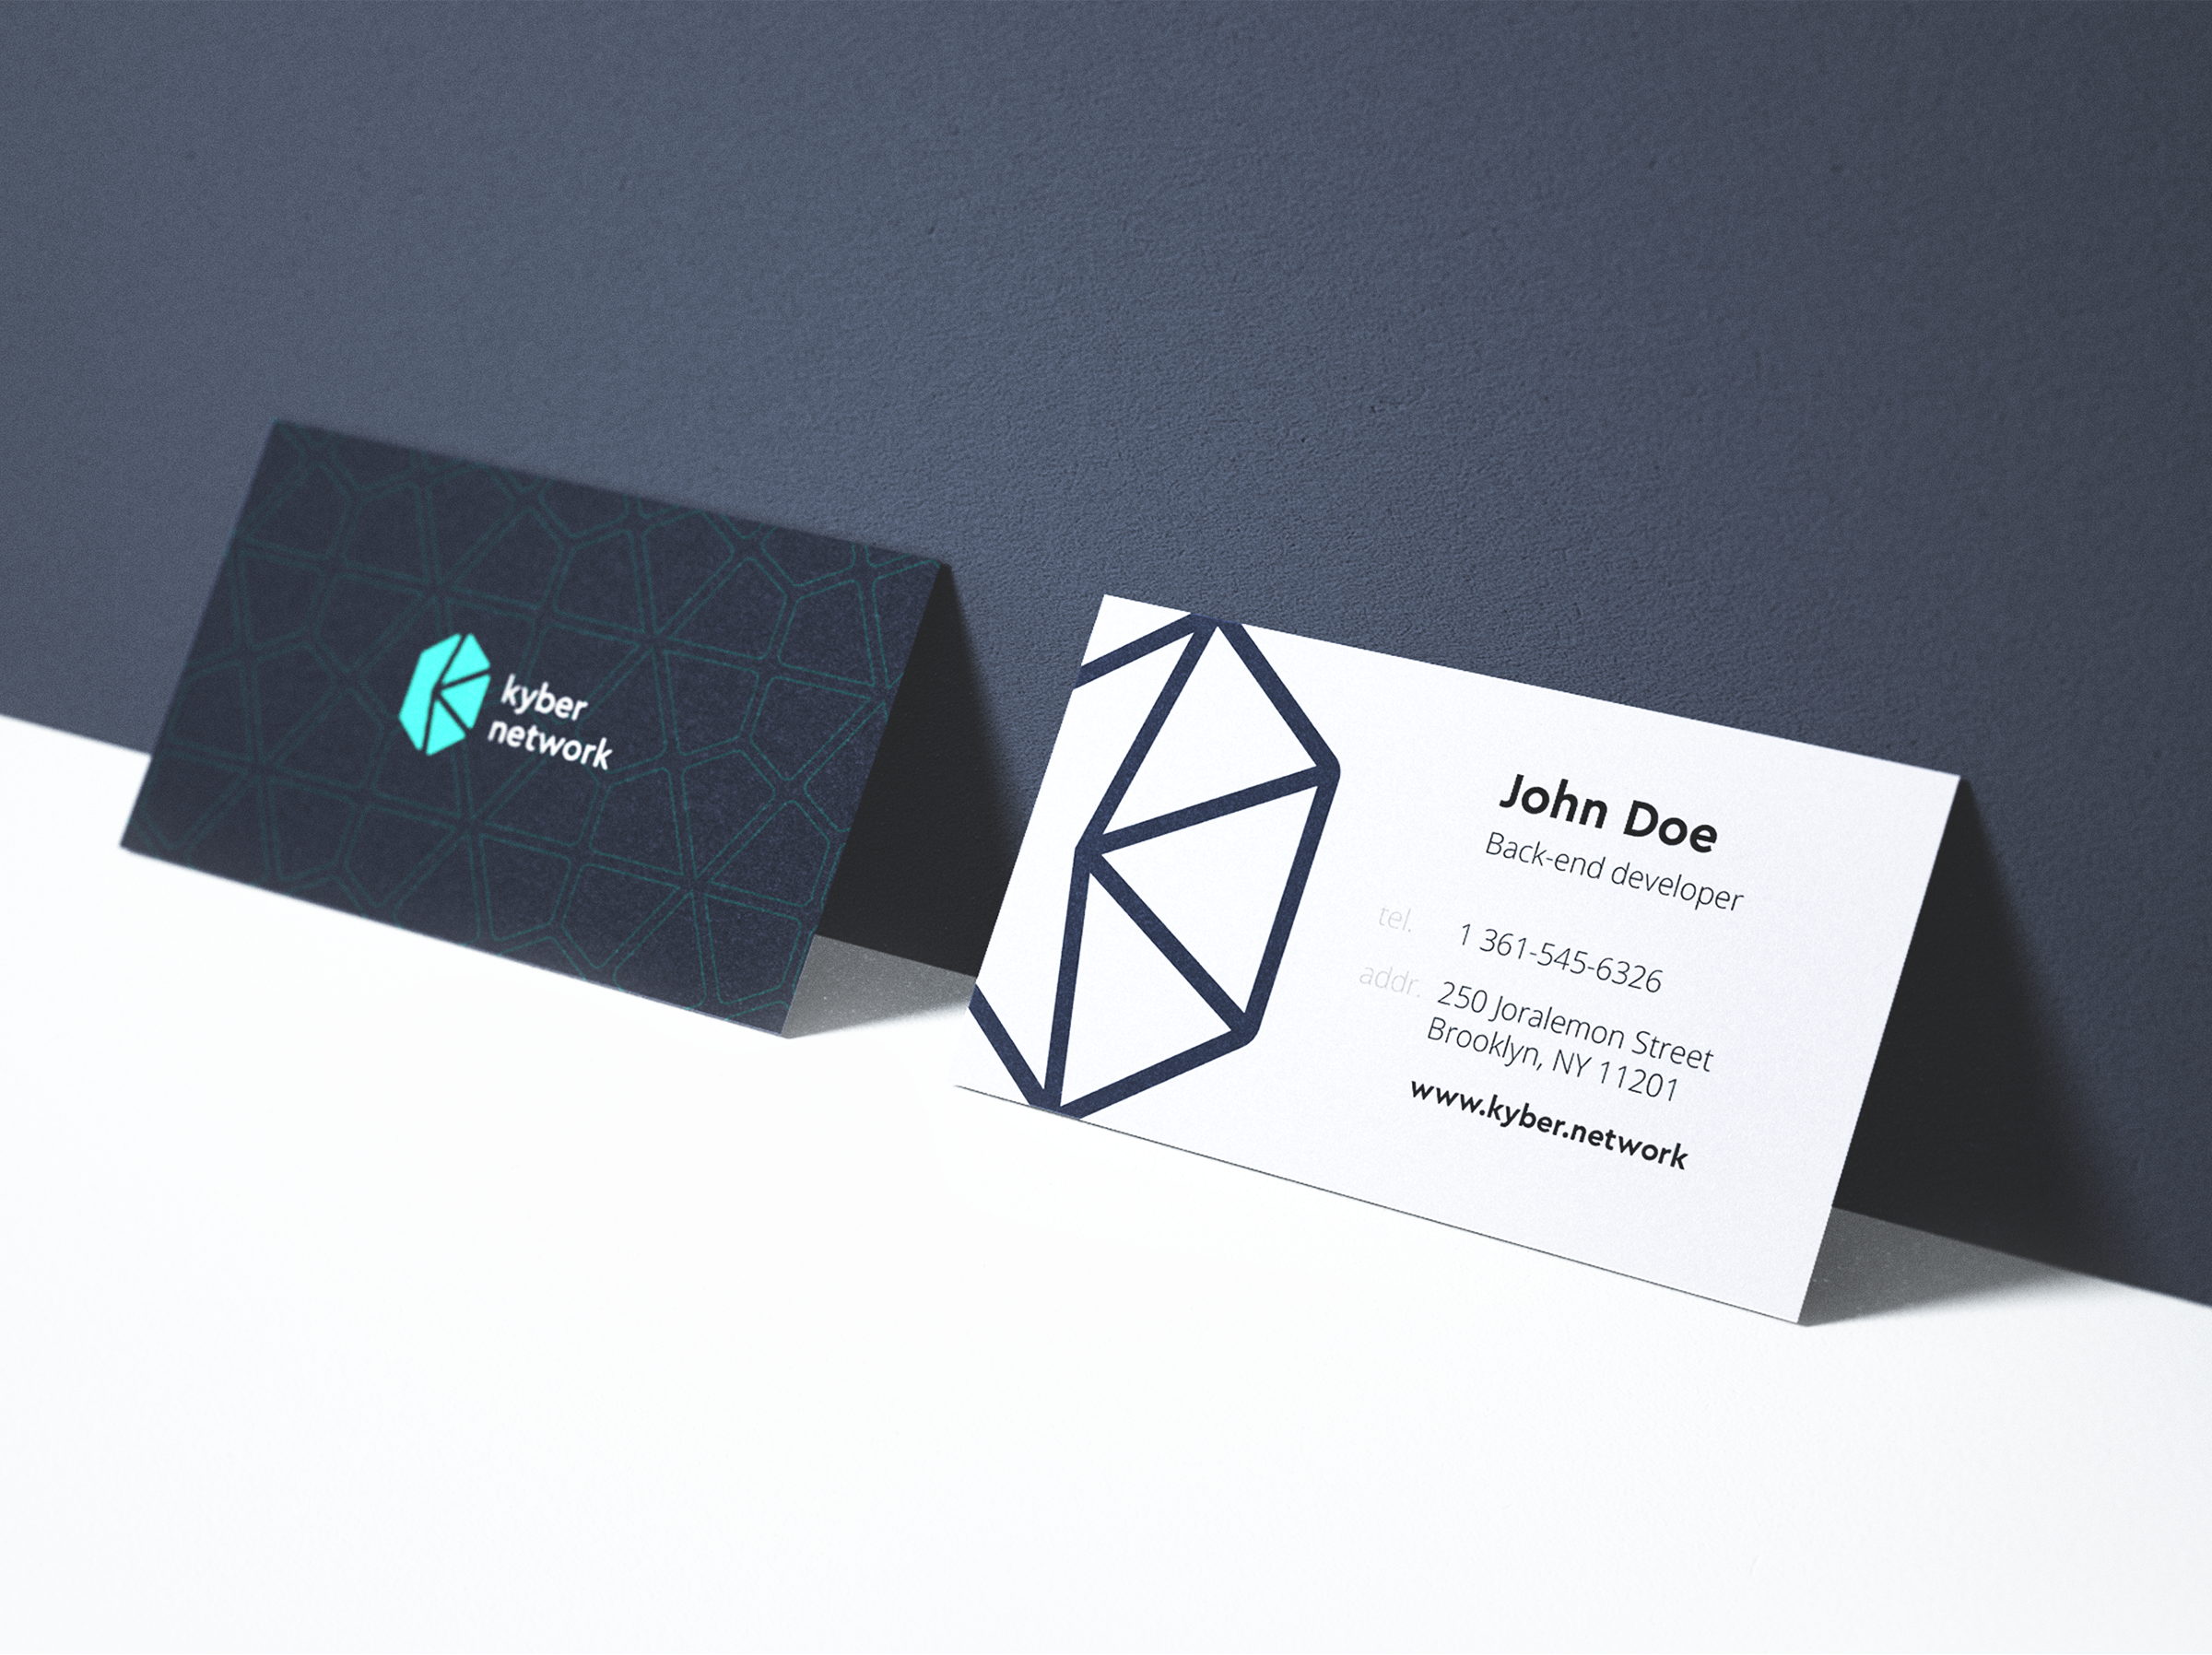 Kyber network business cards ramotion